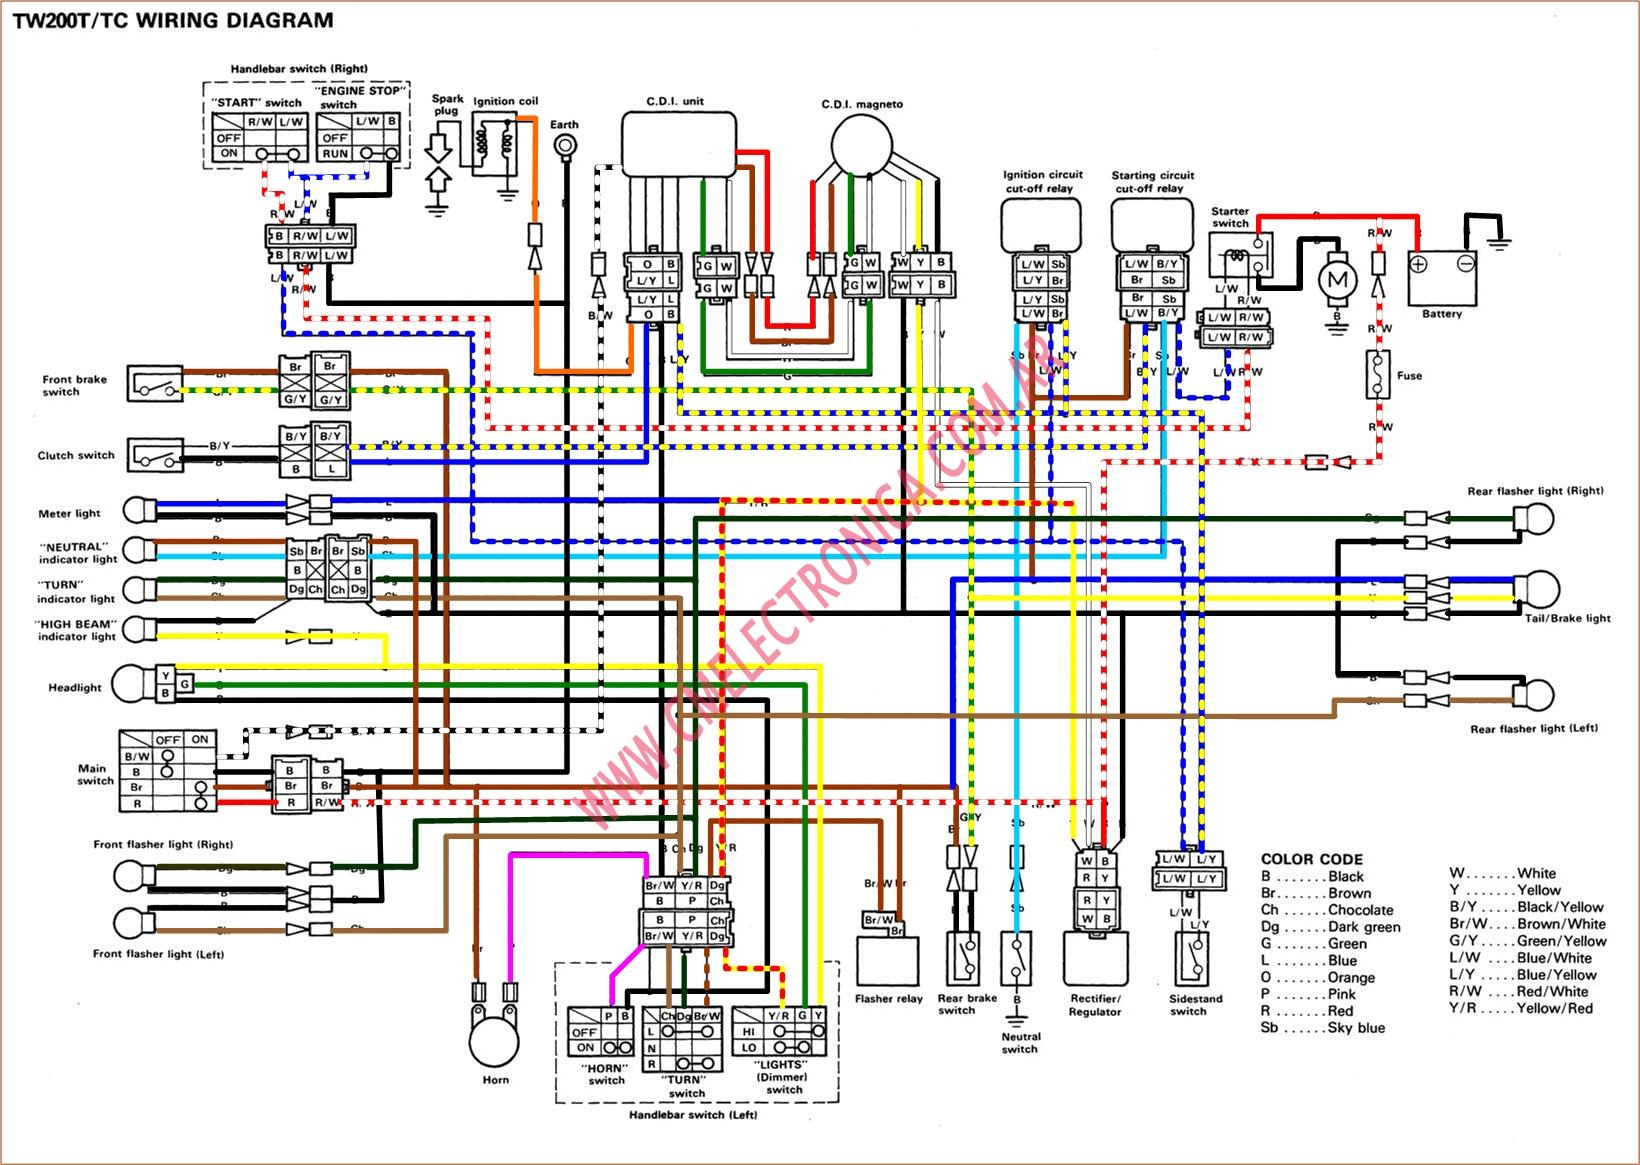 honda outboard wiring diagram honda outboard wiring color code 2003 Yamaha R6 Wiring Diagram yamaha 225 outboard wiring diagram on yamaha images free download honda outboard wiring diagram yamaha 225 2003 yamaha r6 wiring diagram